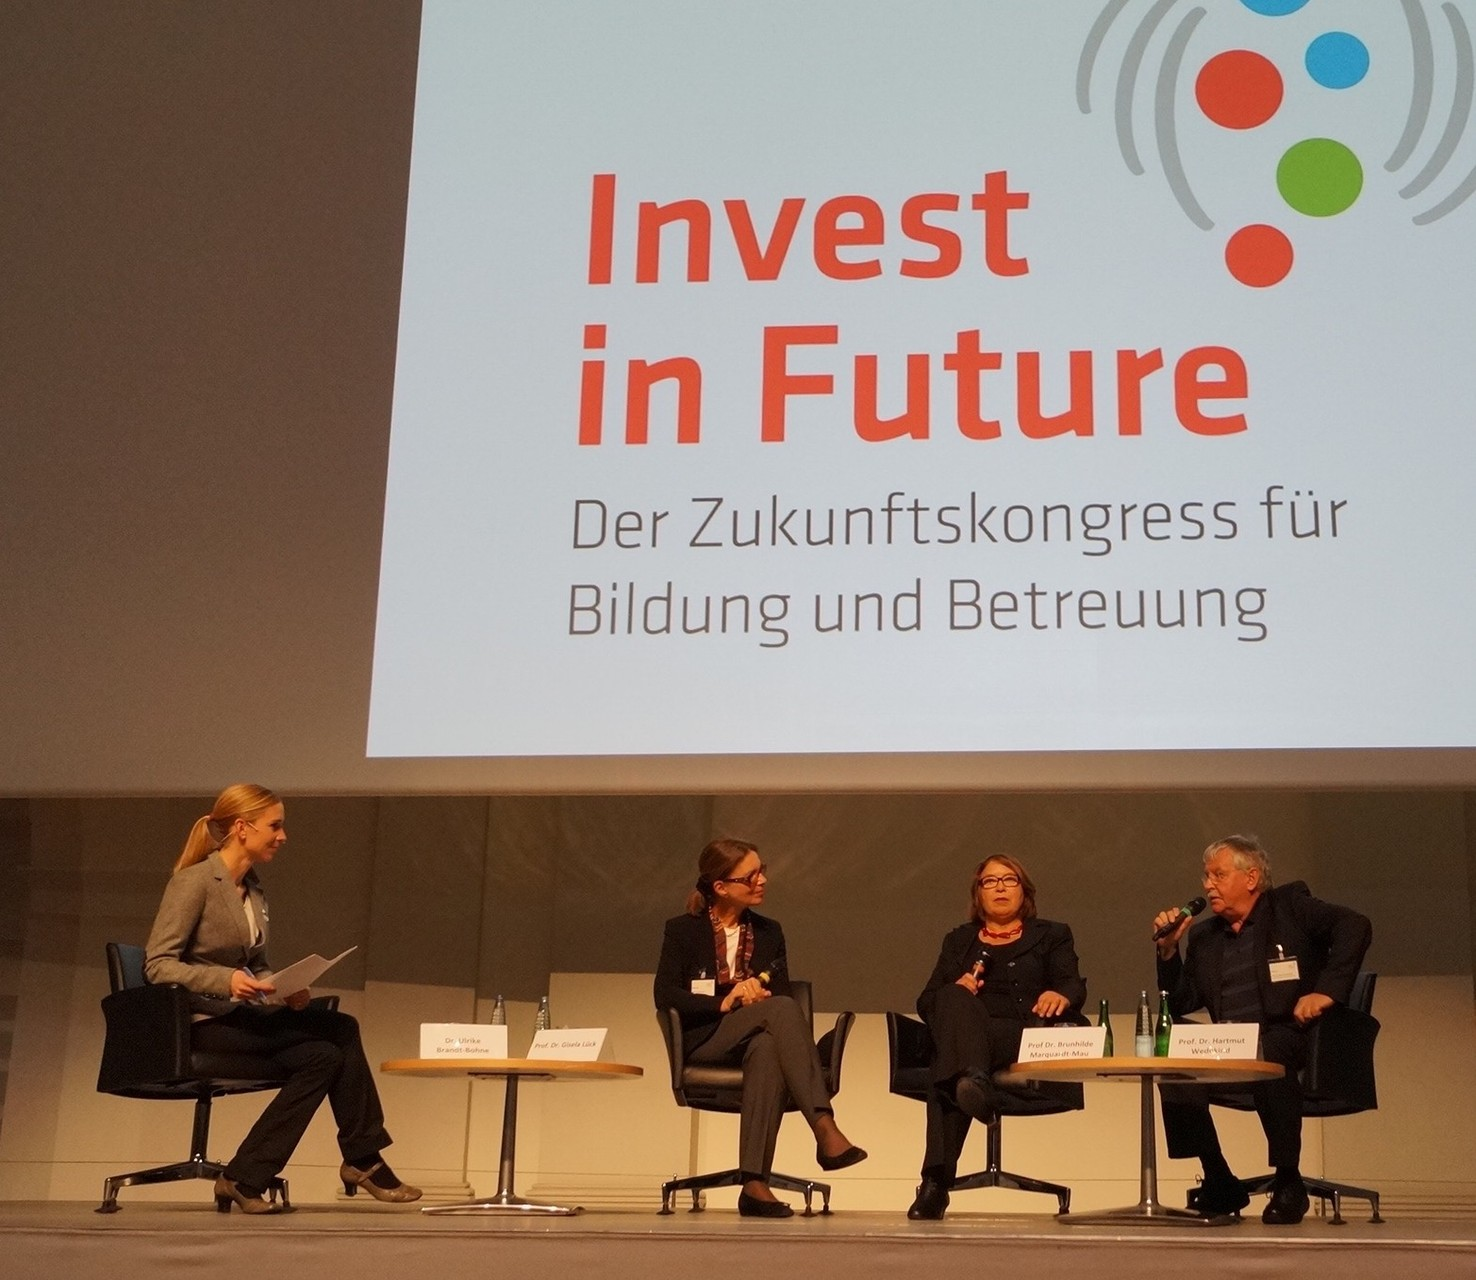 Podiumsdiskussion Invest in Future Zukunftskongress